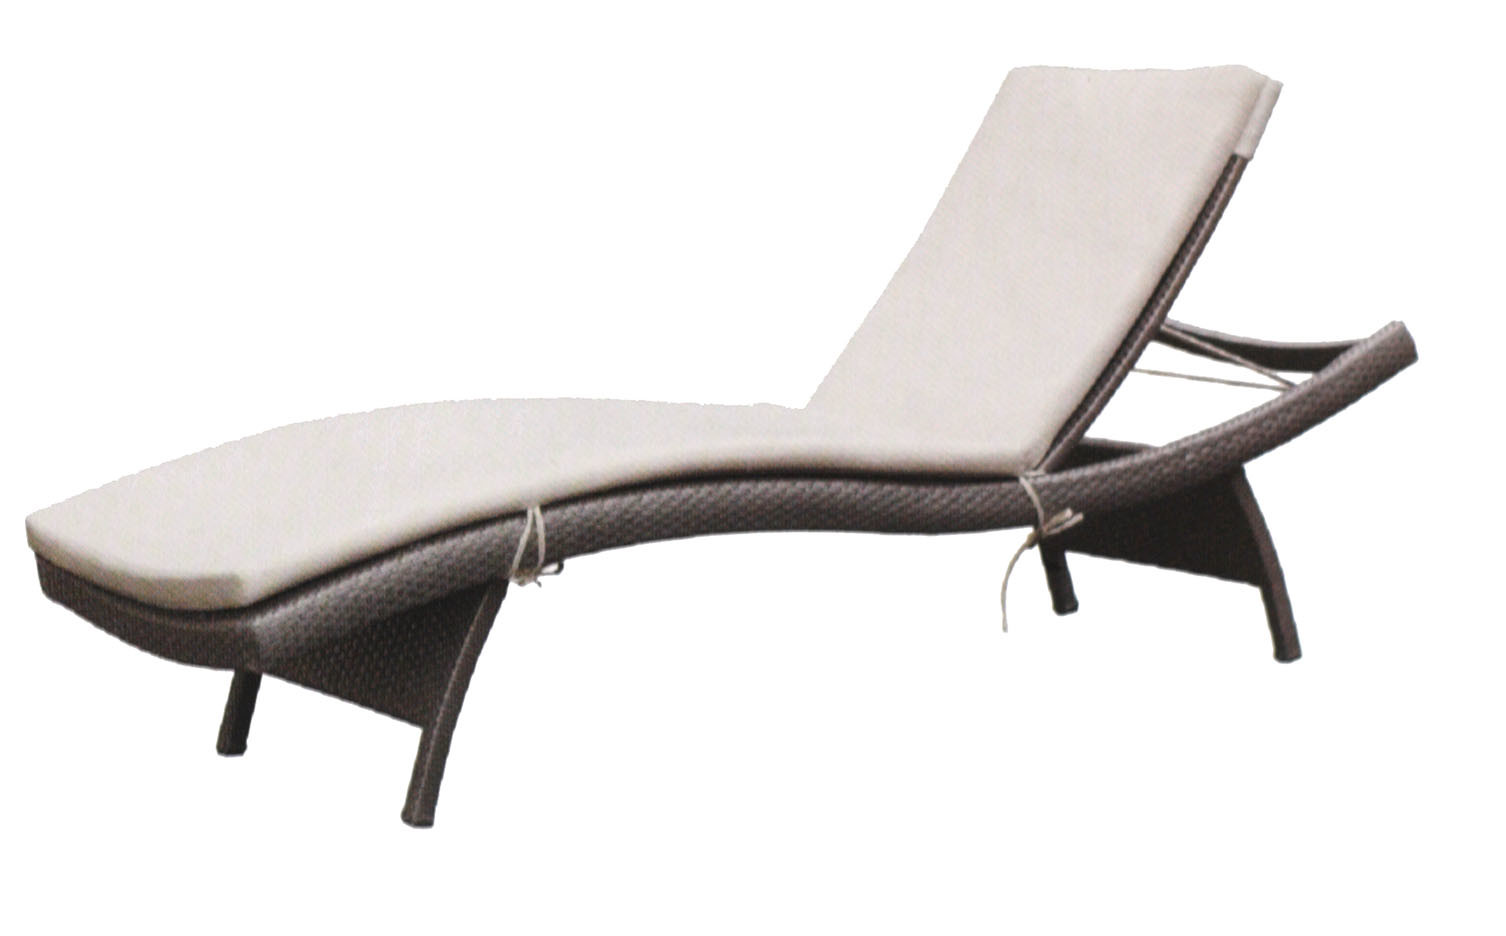 rattan lounger sun bed beach chaise ajustable leisure. Black Bedroom Furniture Sets. Home Design Ideas